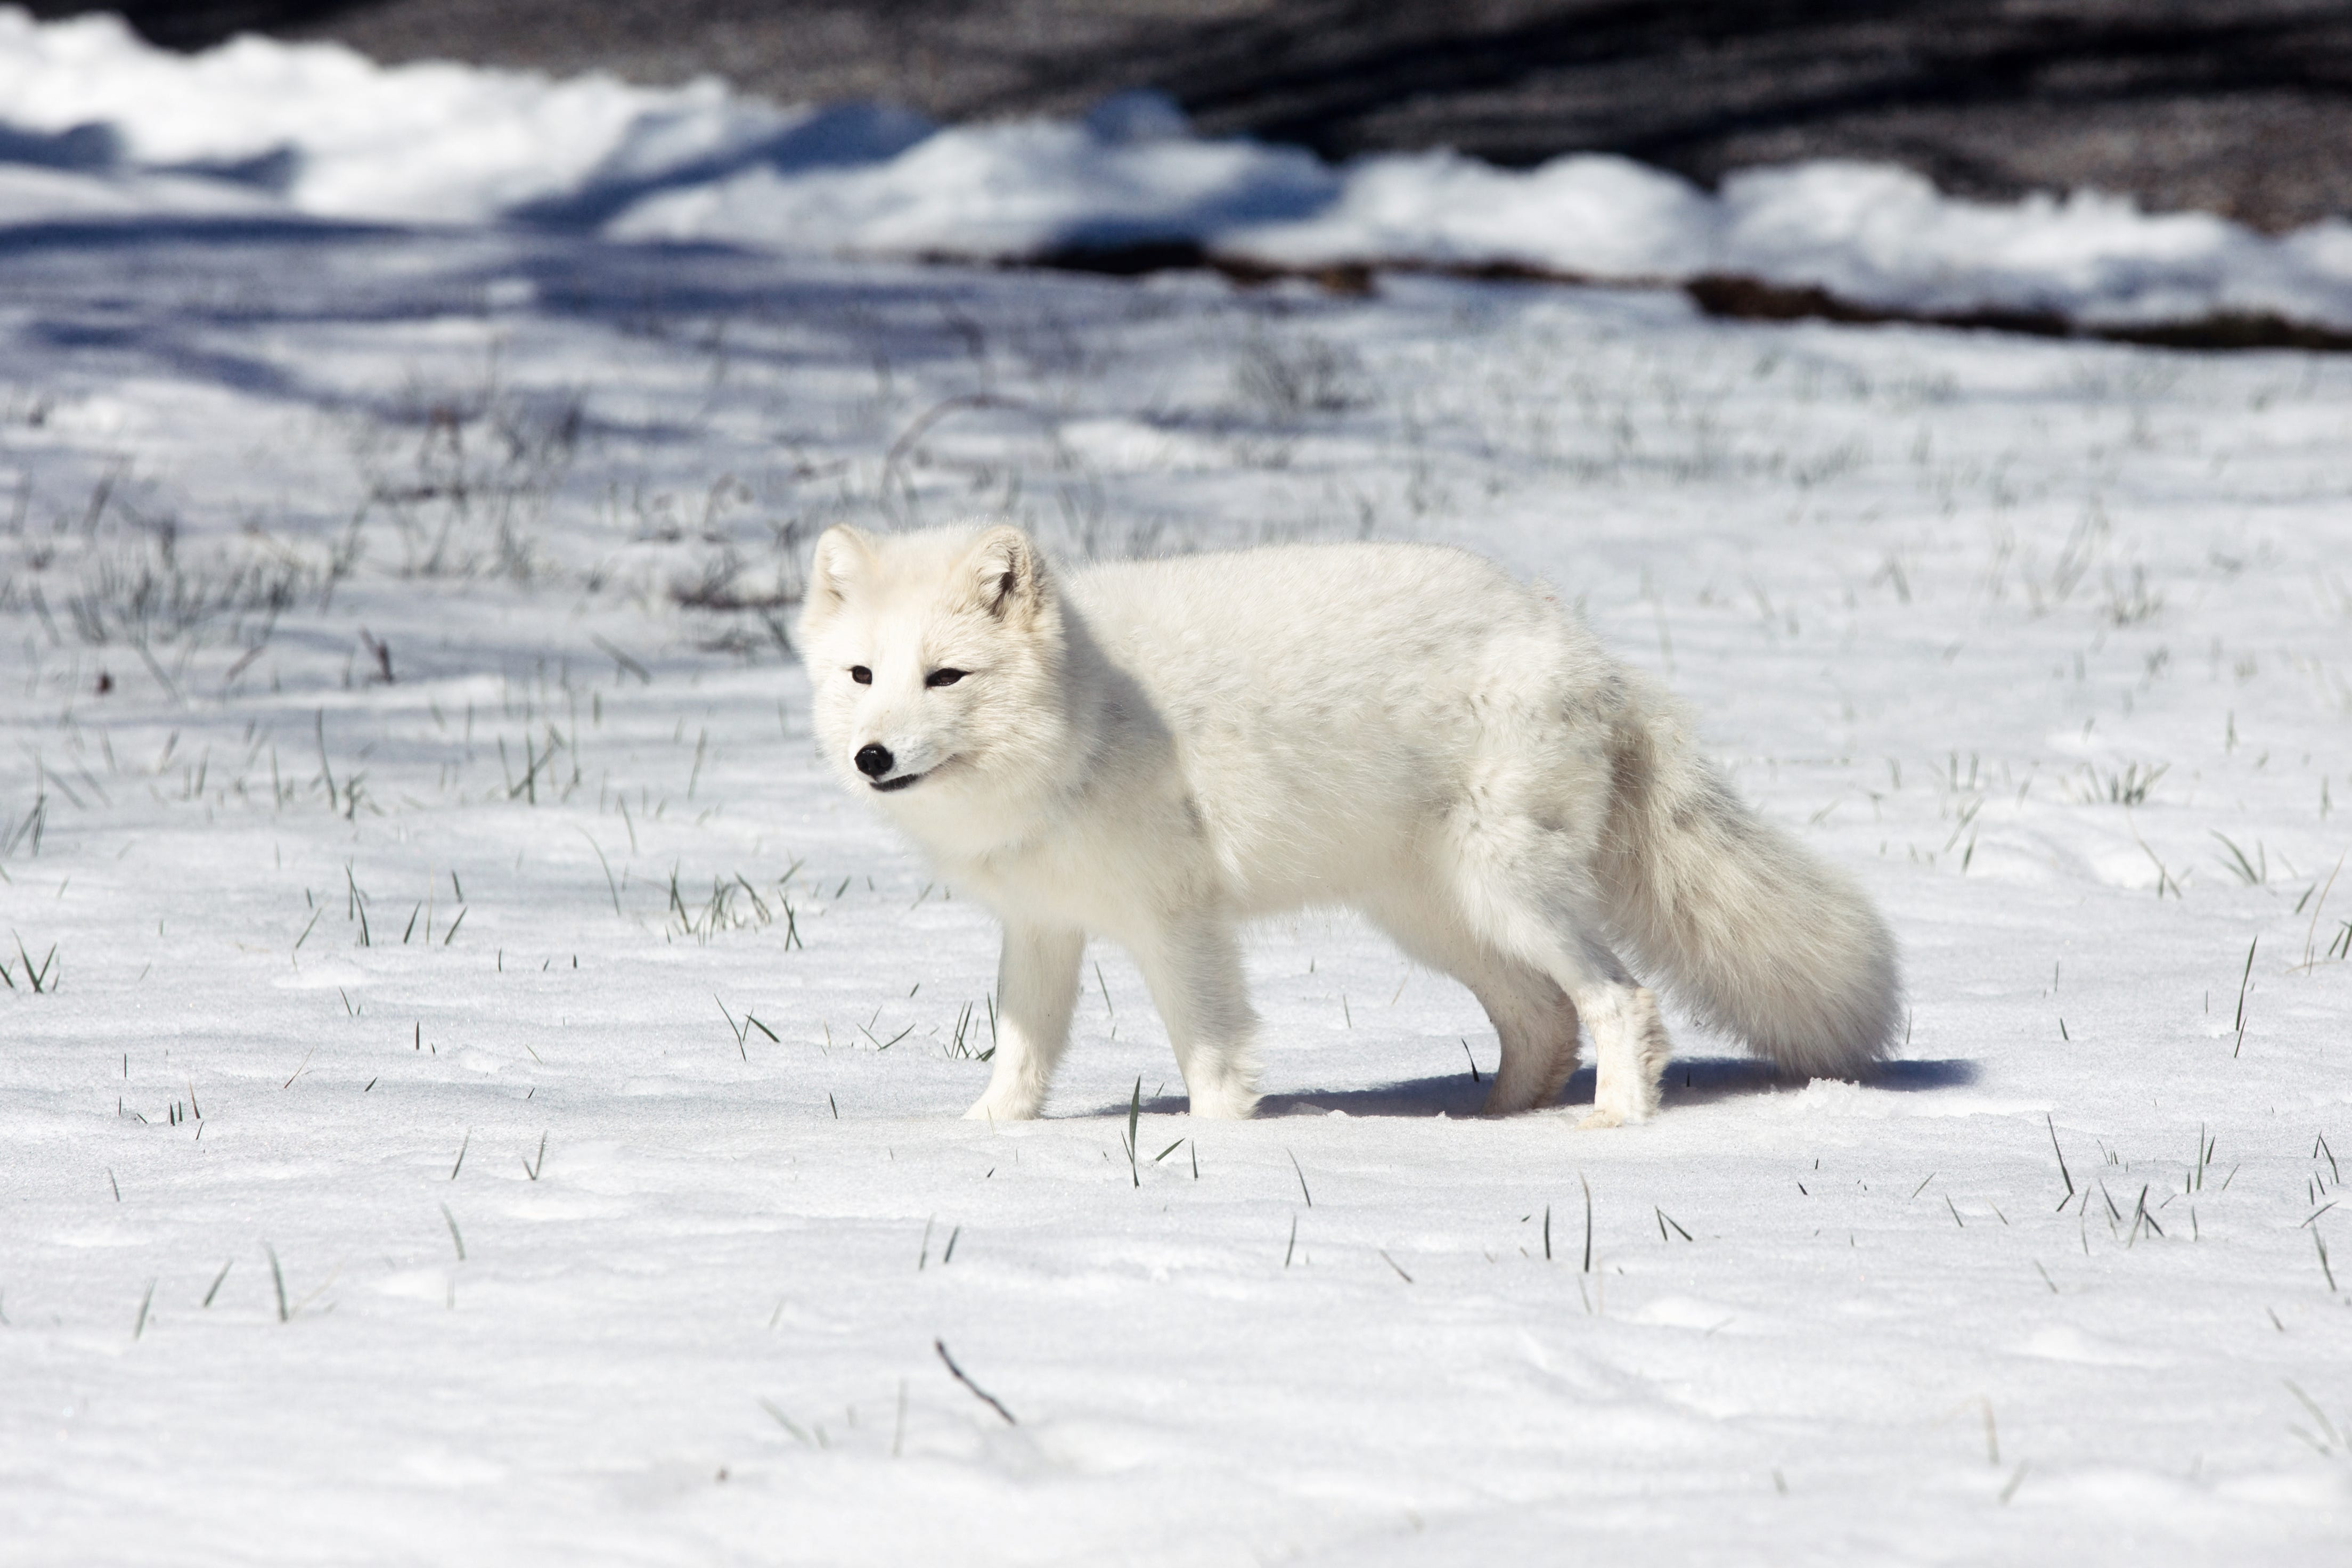 Arctic fox travels record-setting 2,200 miles in 76 days